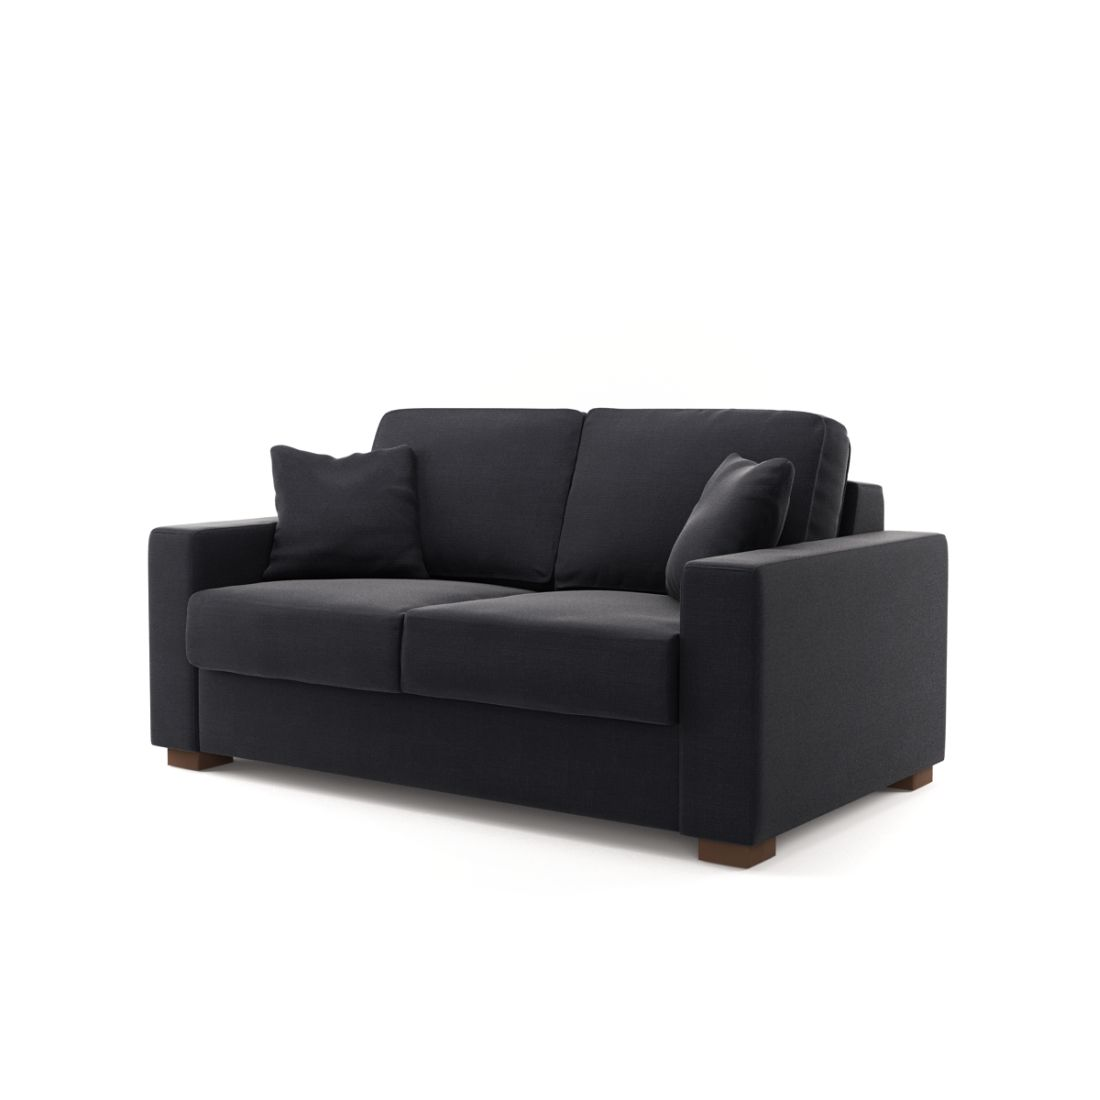 schlafsofa kirkeby 2 sitzer liv iii charcoal schwarz. Black Bedroom Furniture Sets. Home Design Ideas